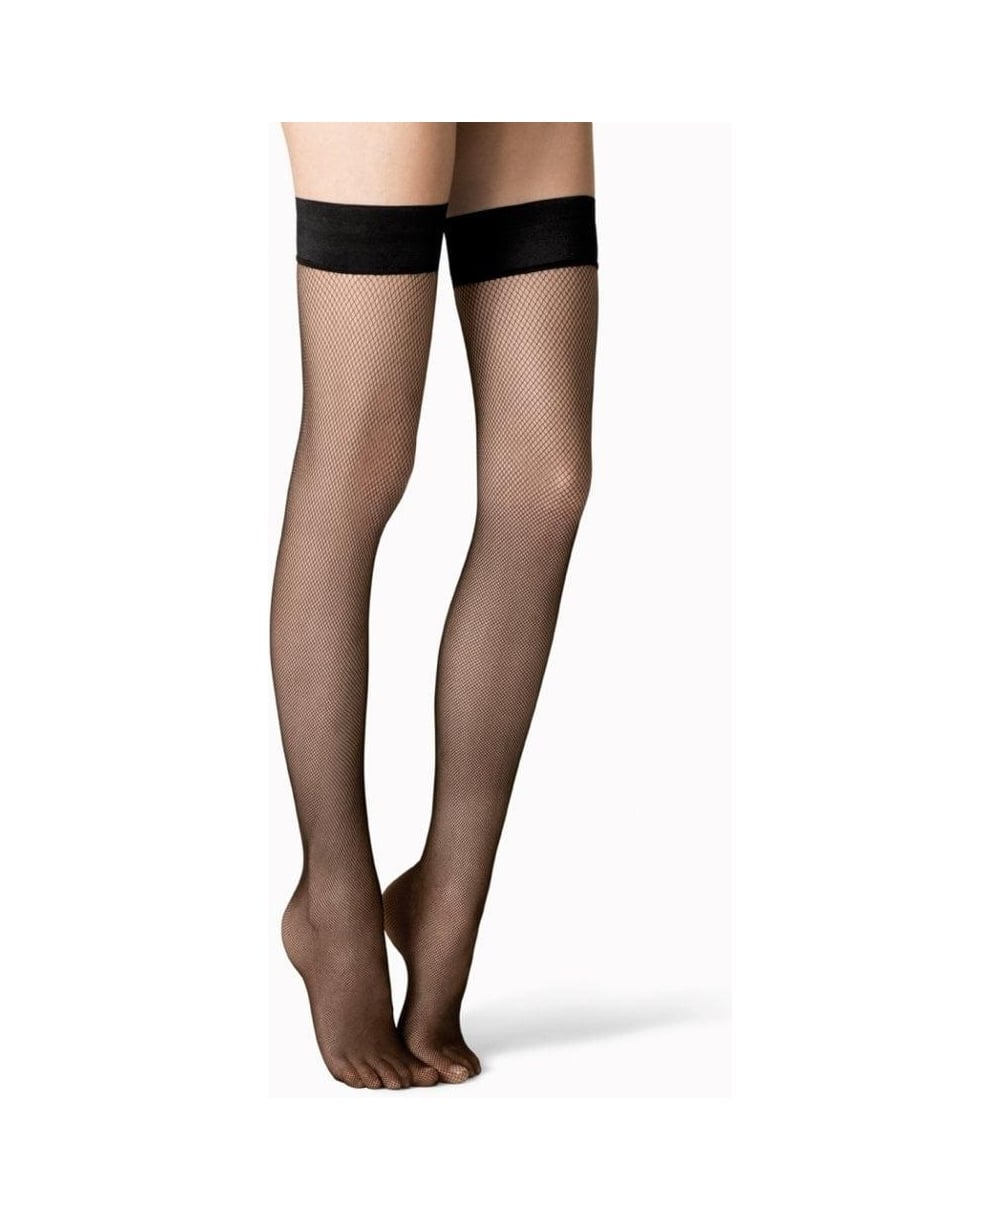 10ed4d6c0 Fogal Netlace Fishnet Stay-Ups - Hold-Ups from luxury-legs.com UK